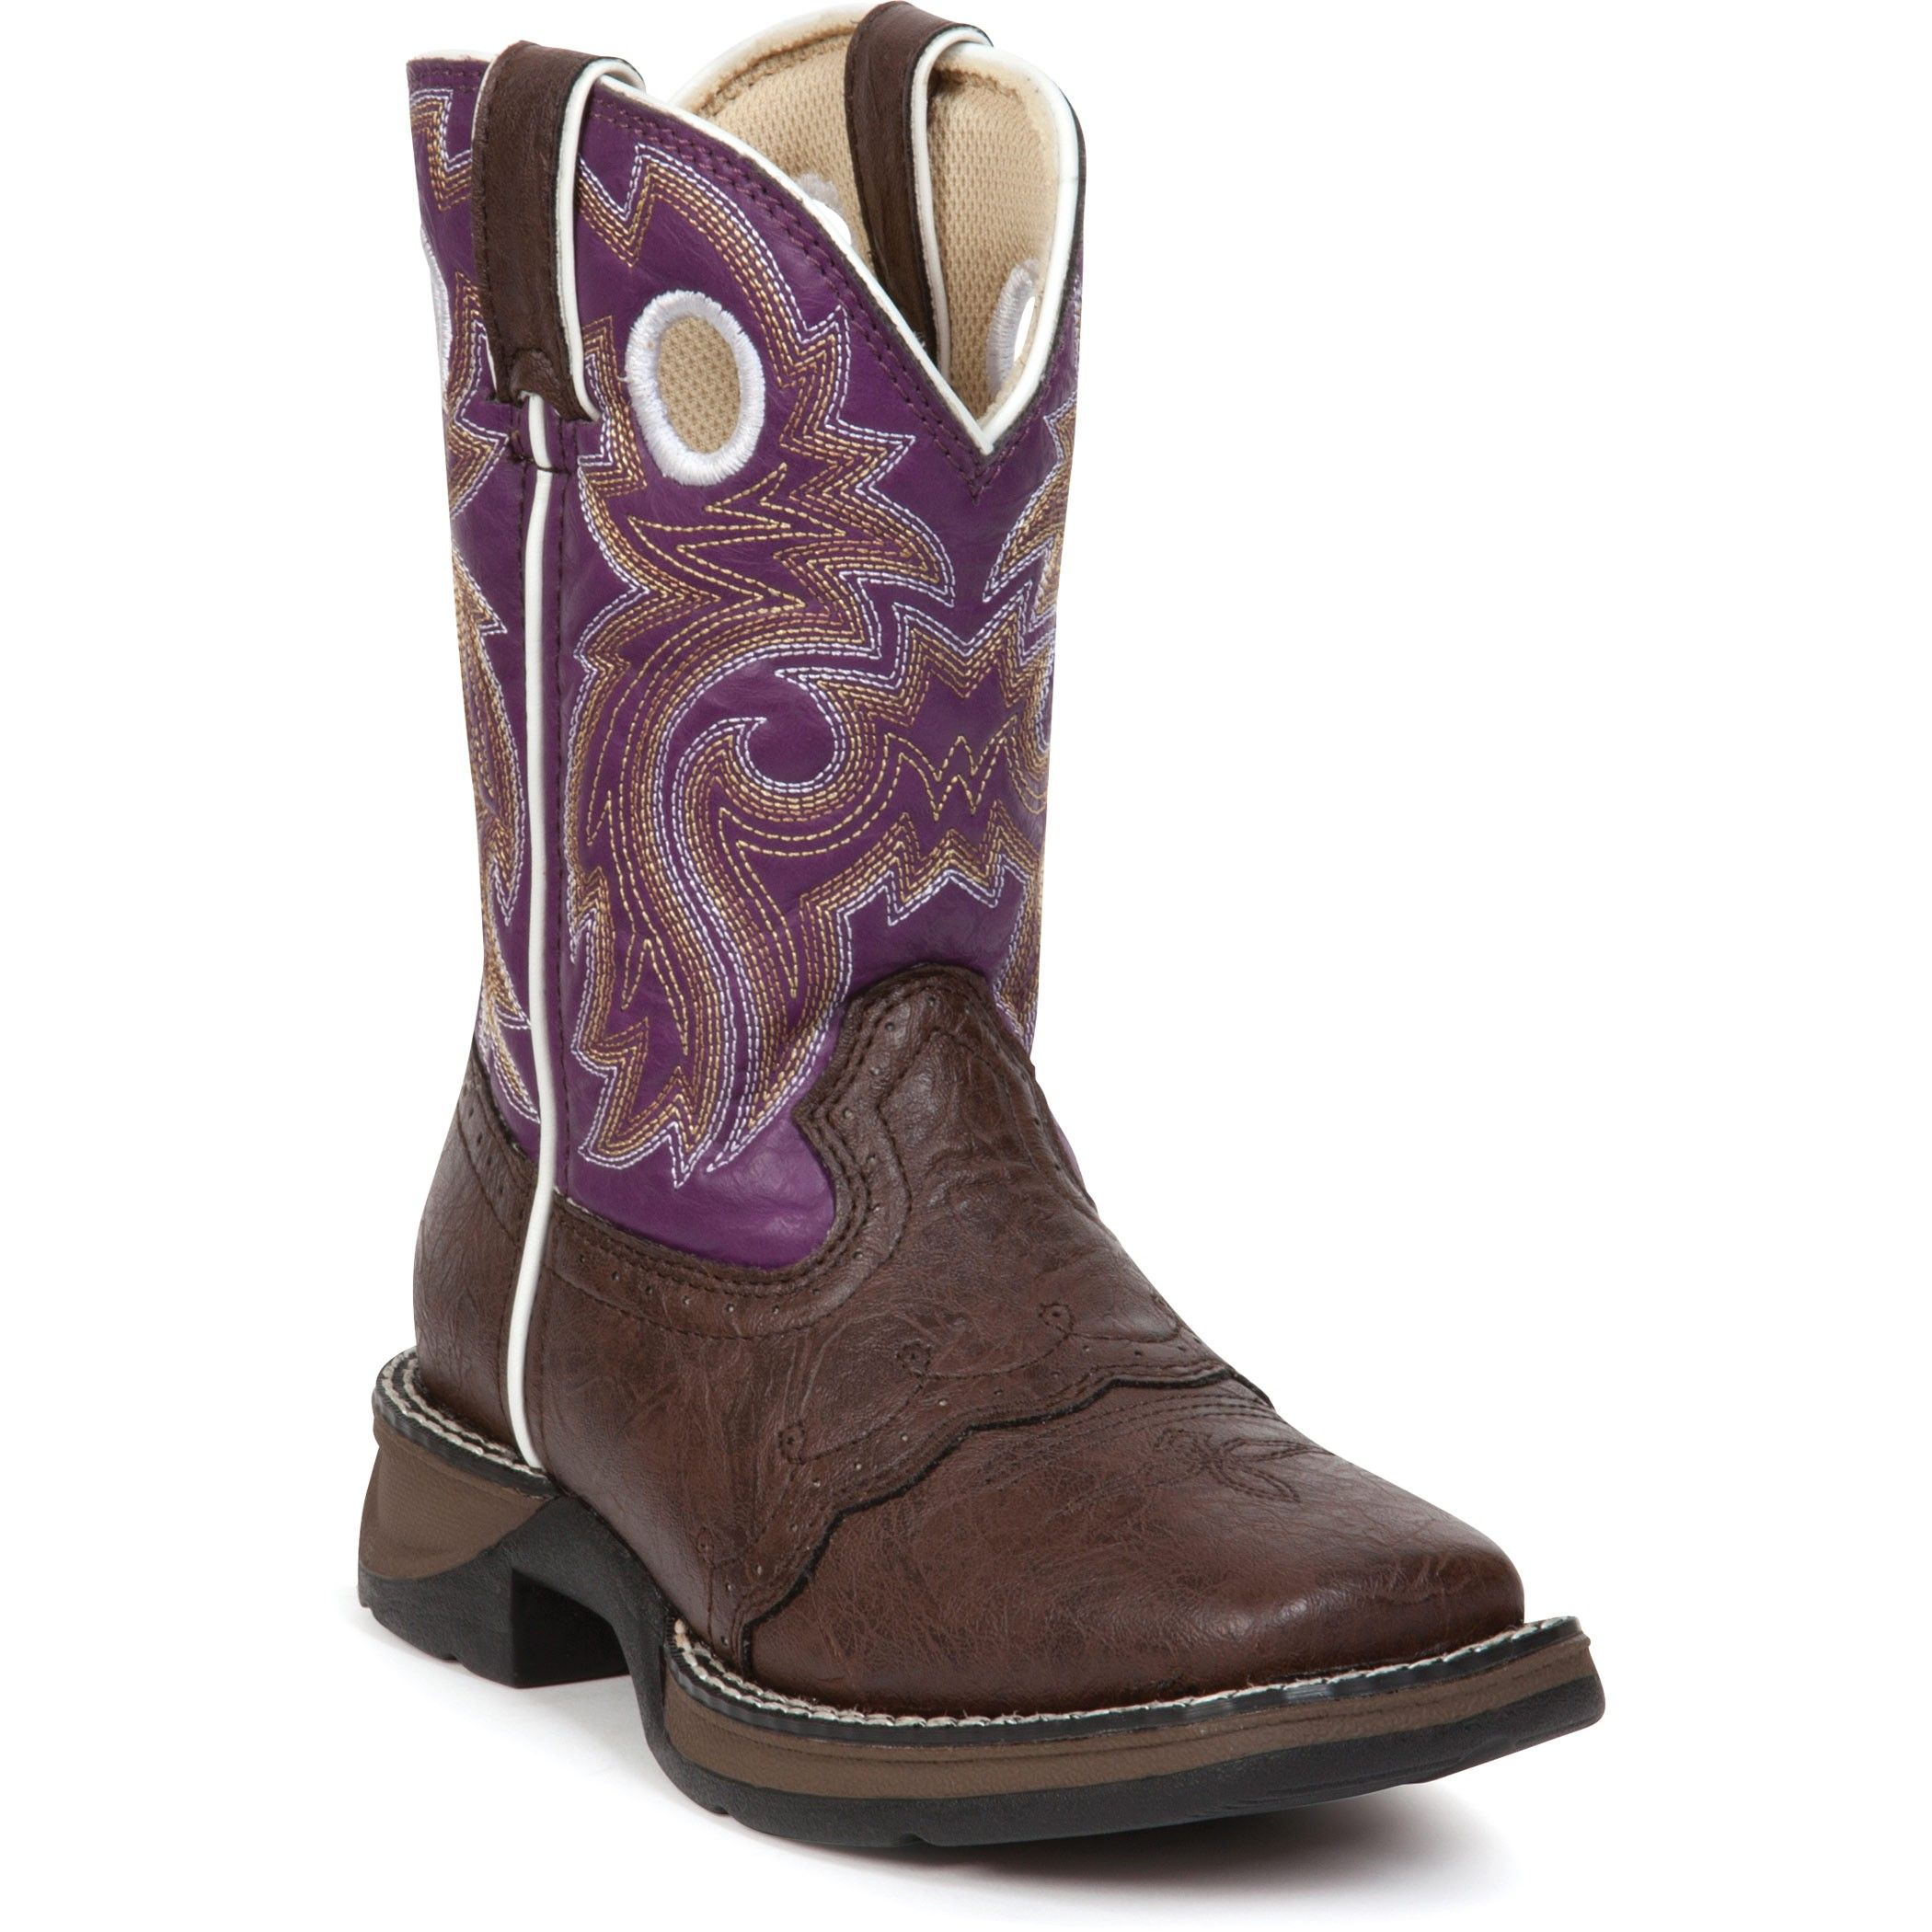 1000  images about Girls cowboy boots on Pinterest | Western boots